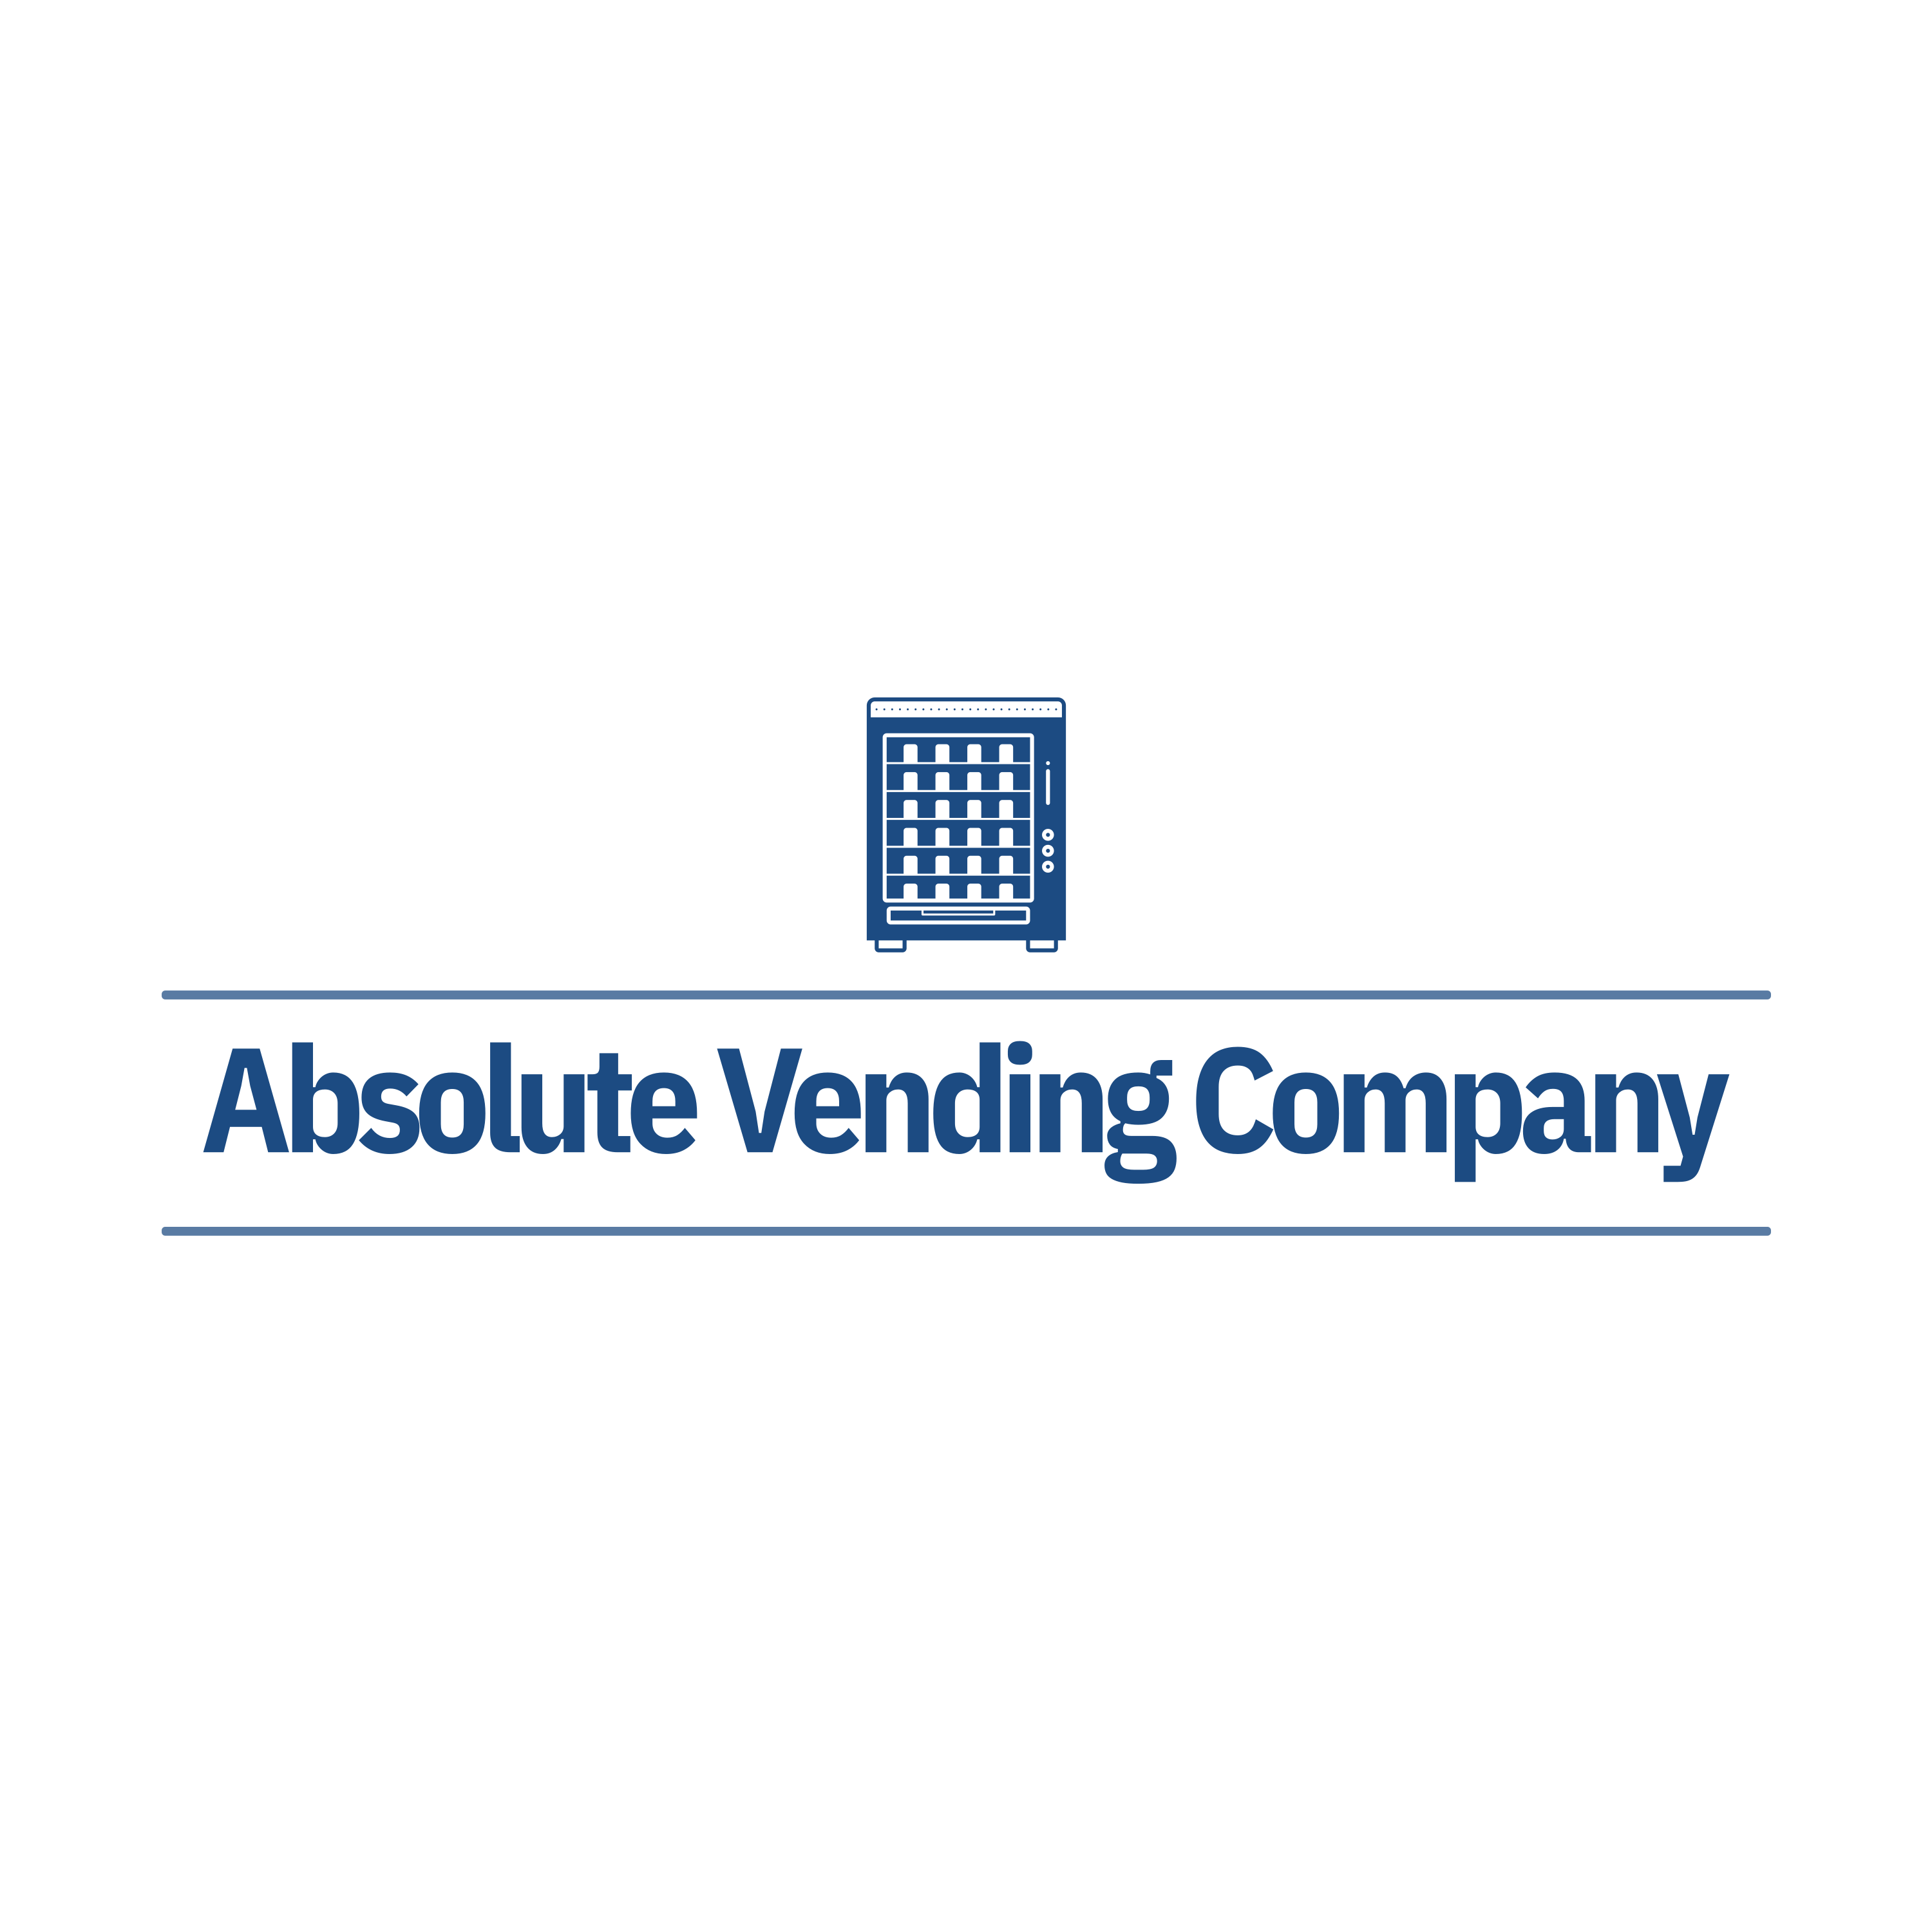 Absolute Vending Company